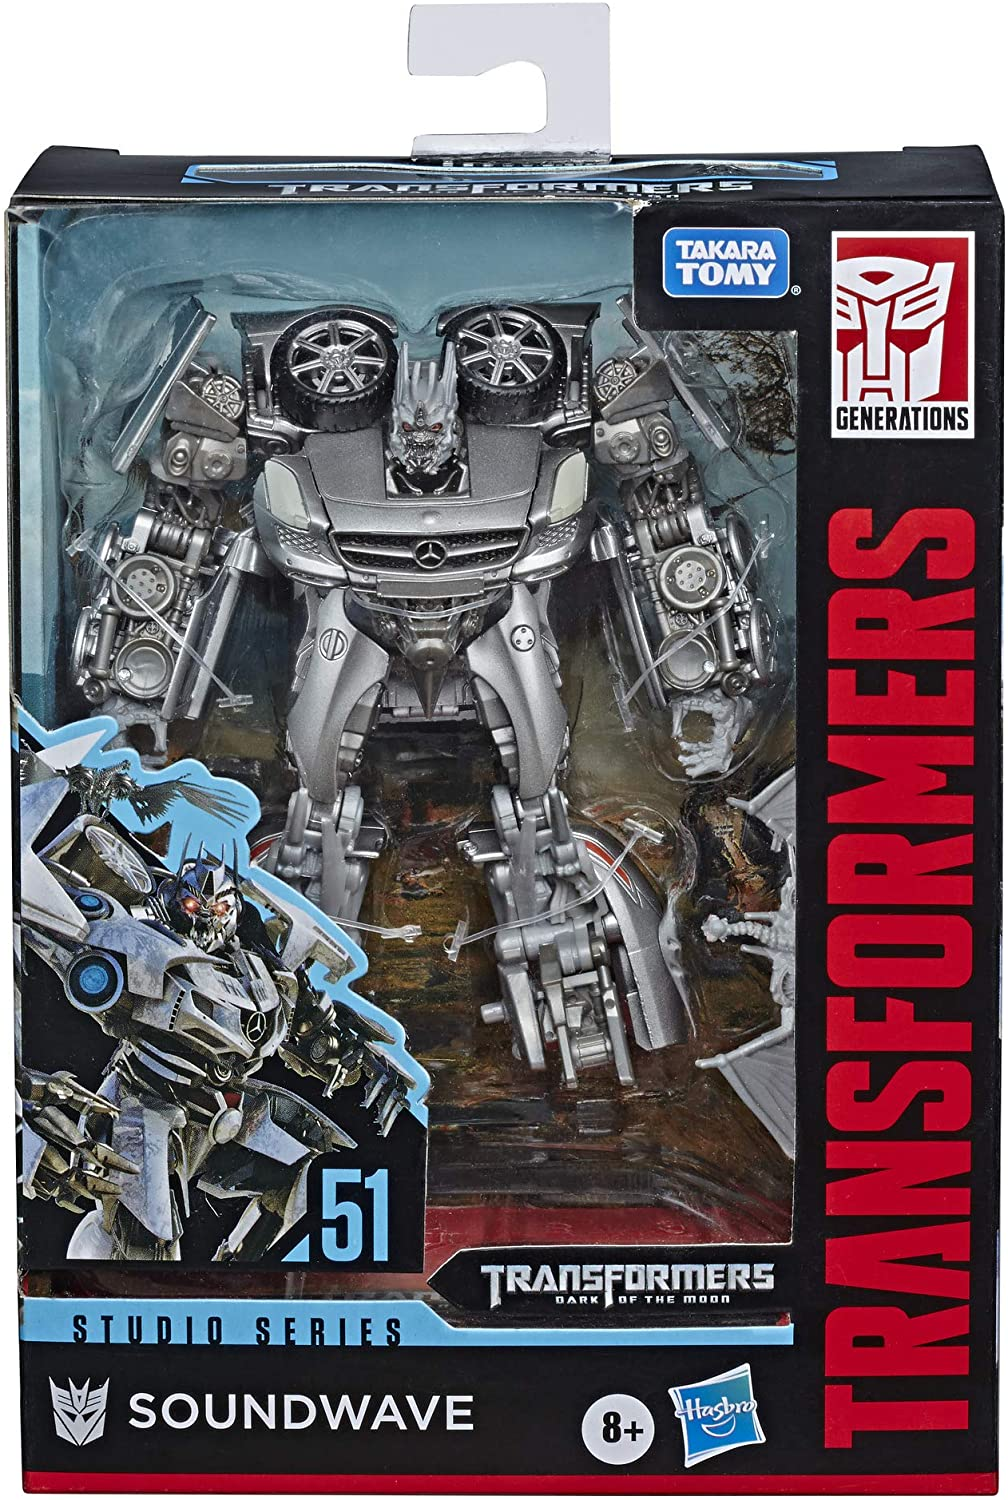 Transformers Toys Studio Series 51 Deluxe Class Dark of The Moon Movie Soundwave Action Figure